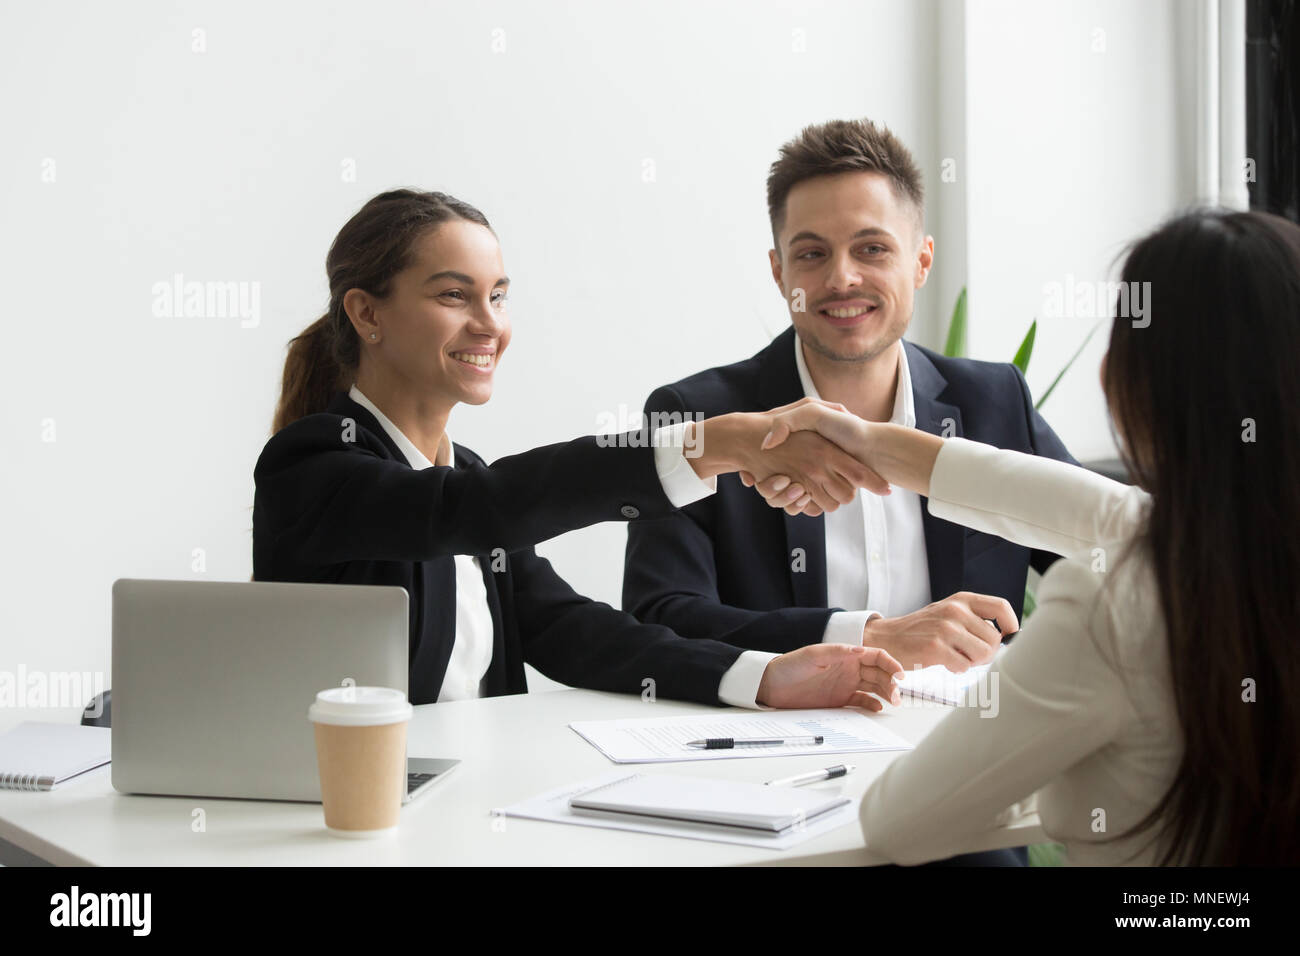 HR representatives positively greeting female job candidate - Stock Image